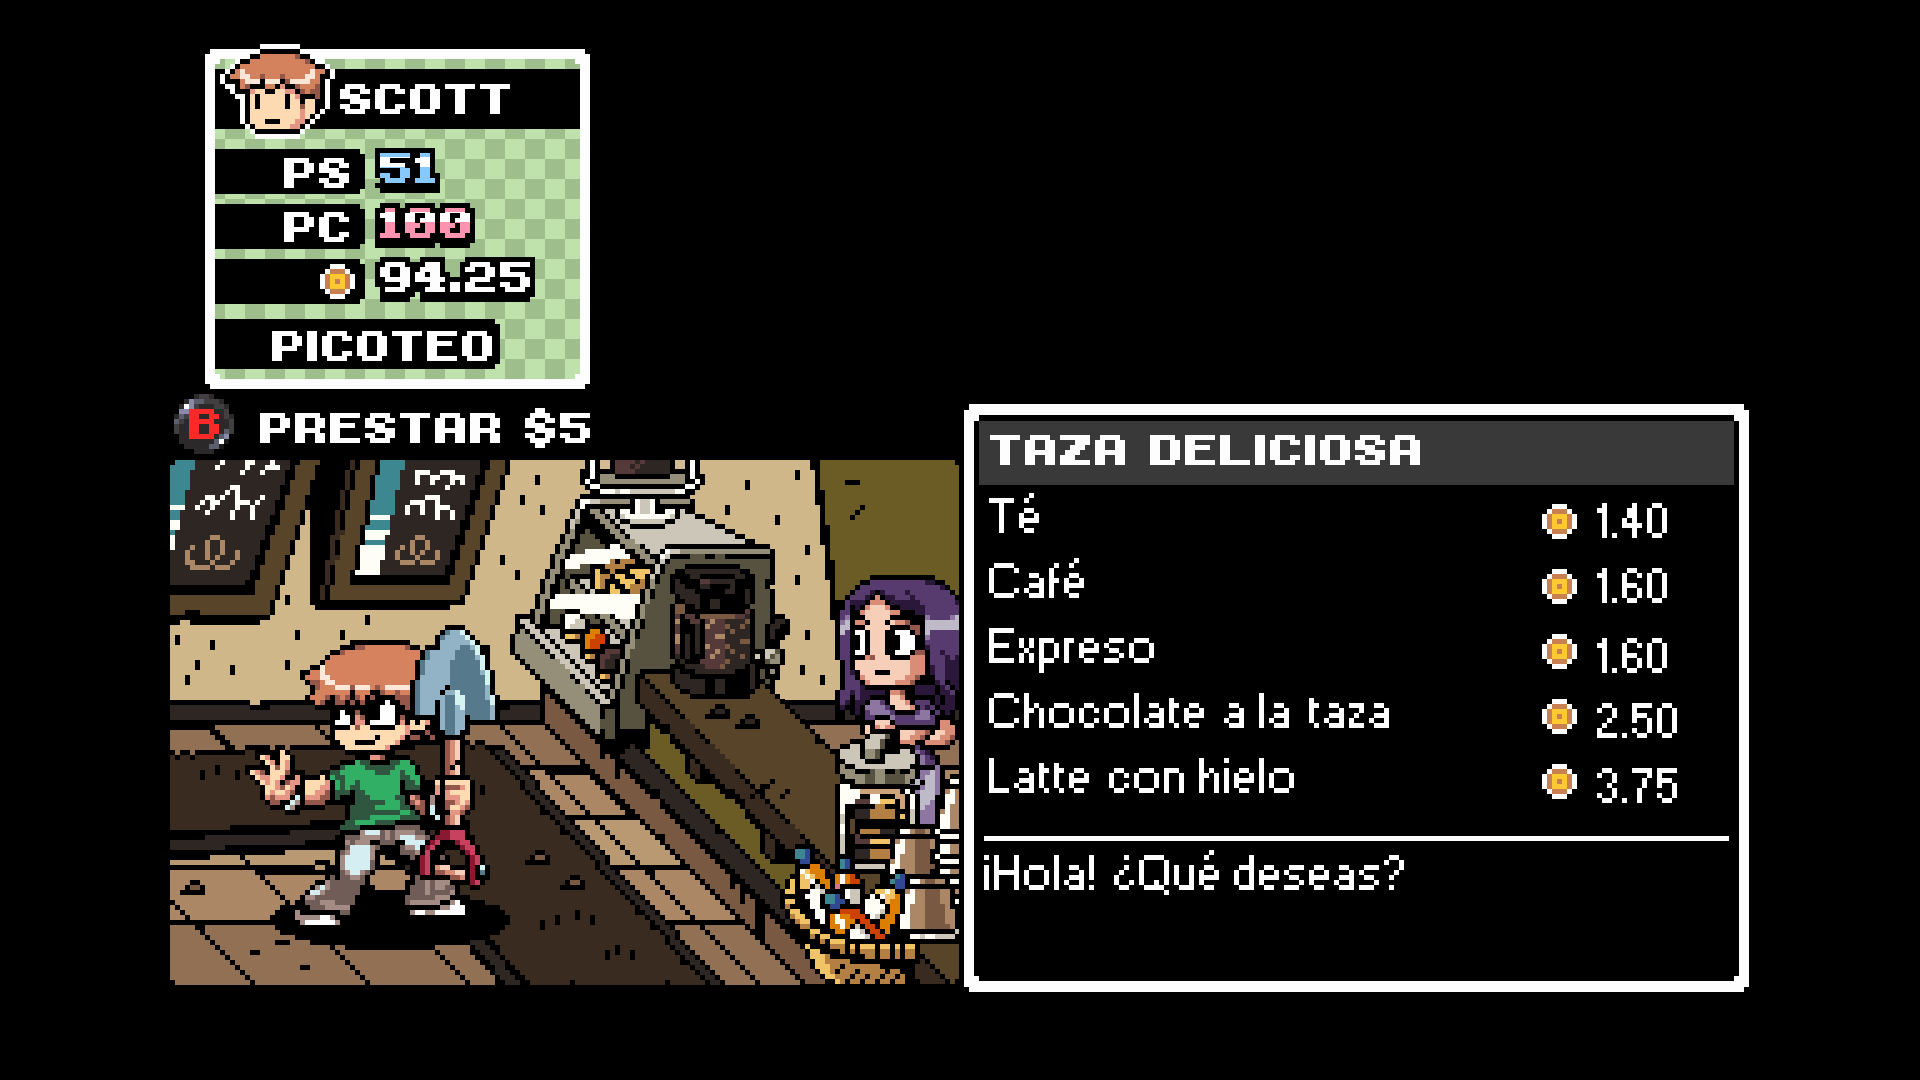 e8a3m7ouri_scott-pilgrim-vs-the-world-the-game-complete-edition-bee1dc88-874e-4c15-90e7-55d5168c040c.png